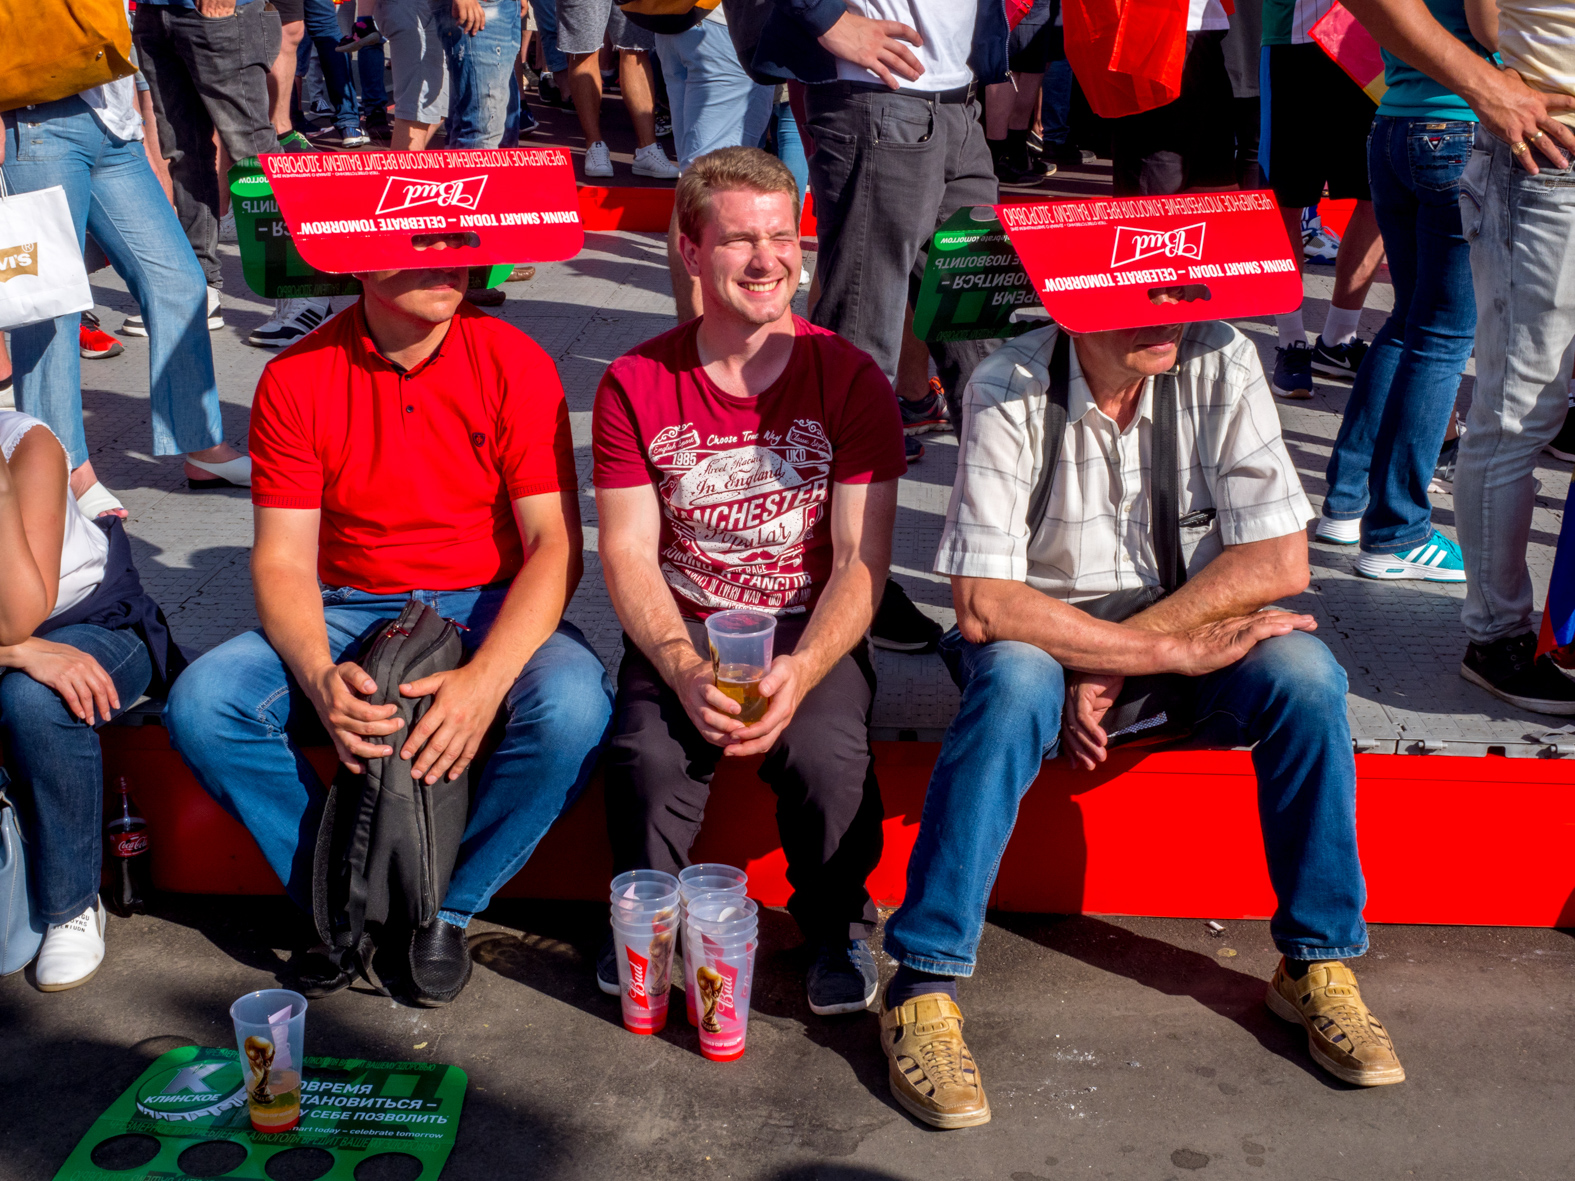 Football fans with makeshift sun shades at the Moscow FIFA Fan Fest located at Vorobyovy Gory (Sparrow Hills) with a venue Capacity of 25,000. The site provides a spectacular view down the hill, directly towards Luzhniki Stadium and Moscow City.The 21st FIFA World Cup football tournament took place in Russia in 2018. It was the first World Cup to be held in Eastern Europe and the eleventh time that it has been held in Europe. For the first time the tournament took place on two continents – Europe and Asia. All but two of the stadium venues were in European Russia.